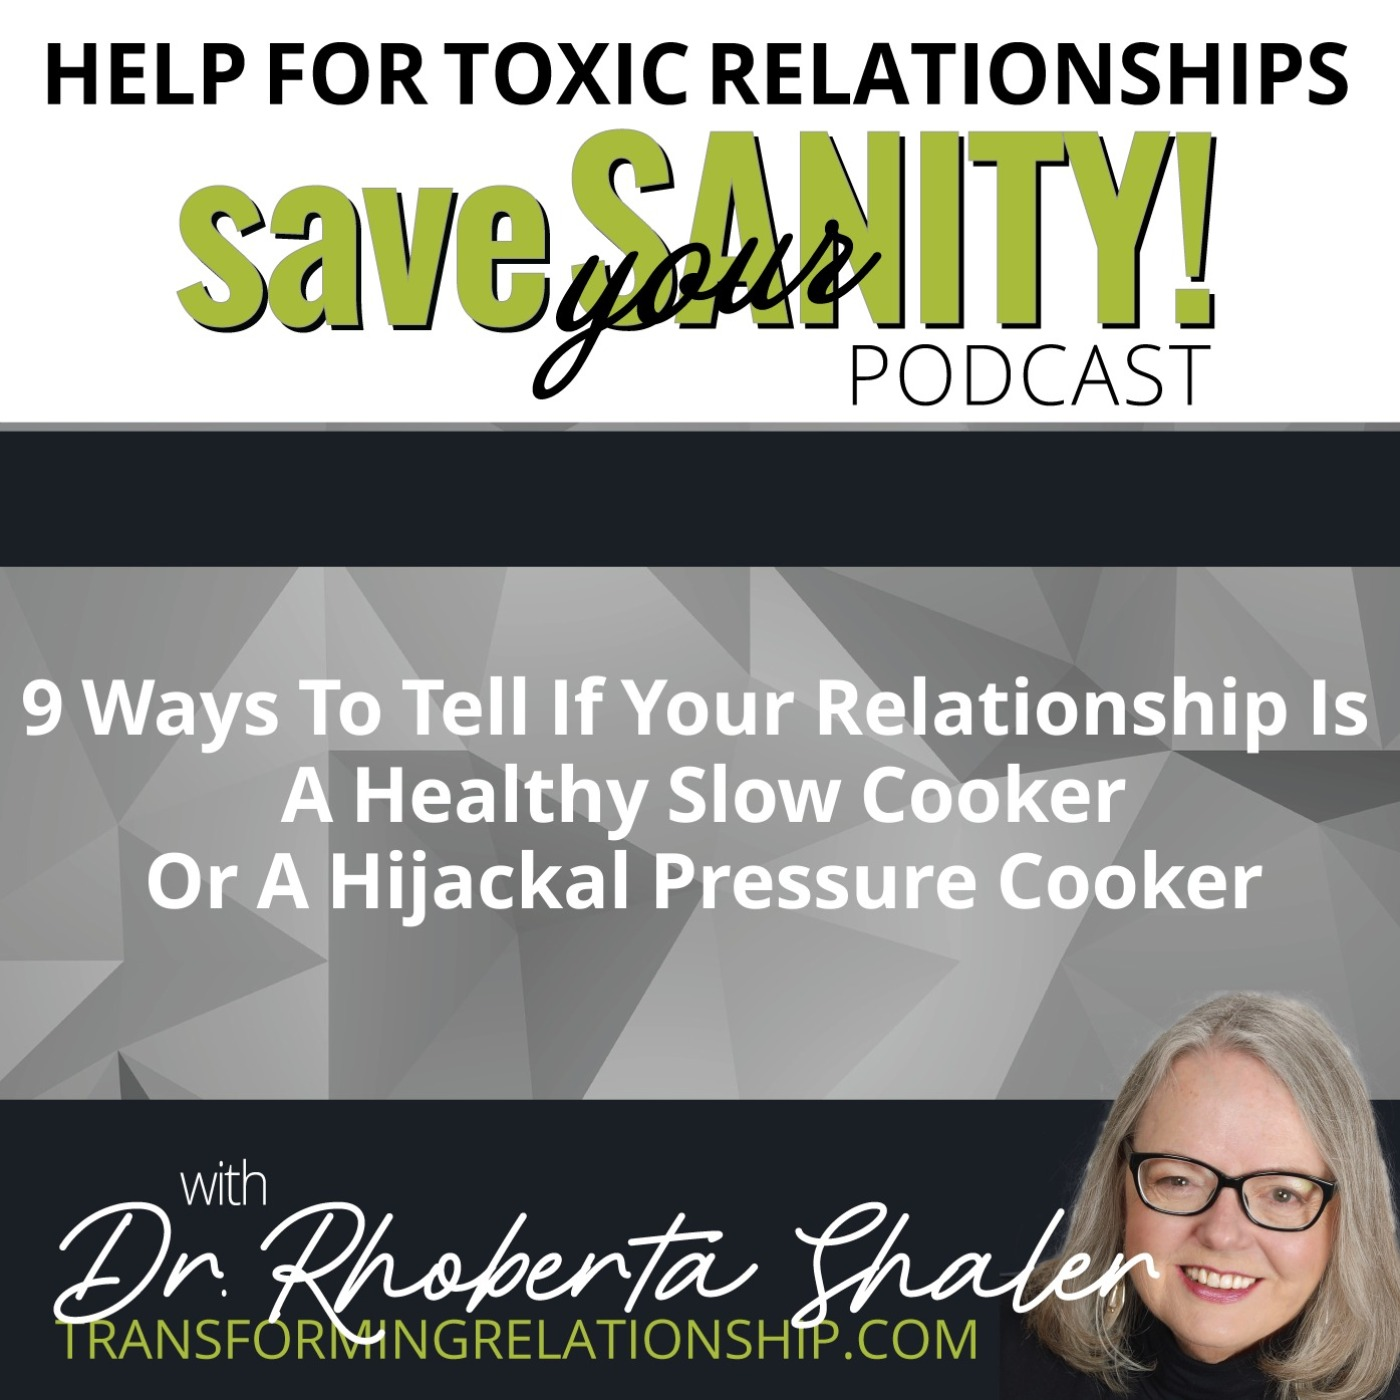 9 Ways to Tell If Your Relationship Is A Healthy Slow Cooker Or A Hijackal Pressure Cooker